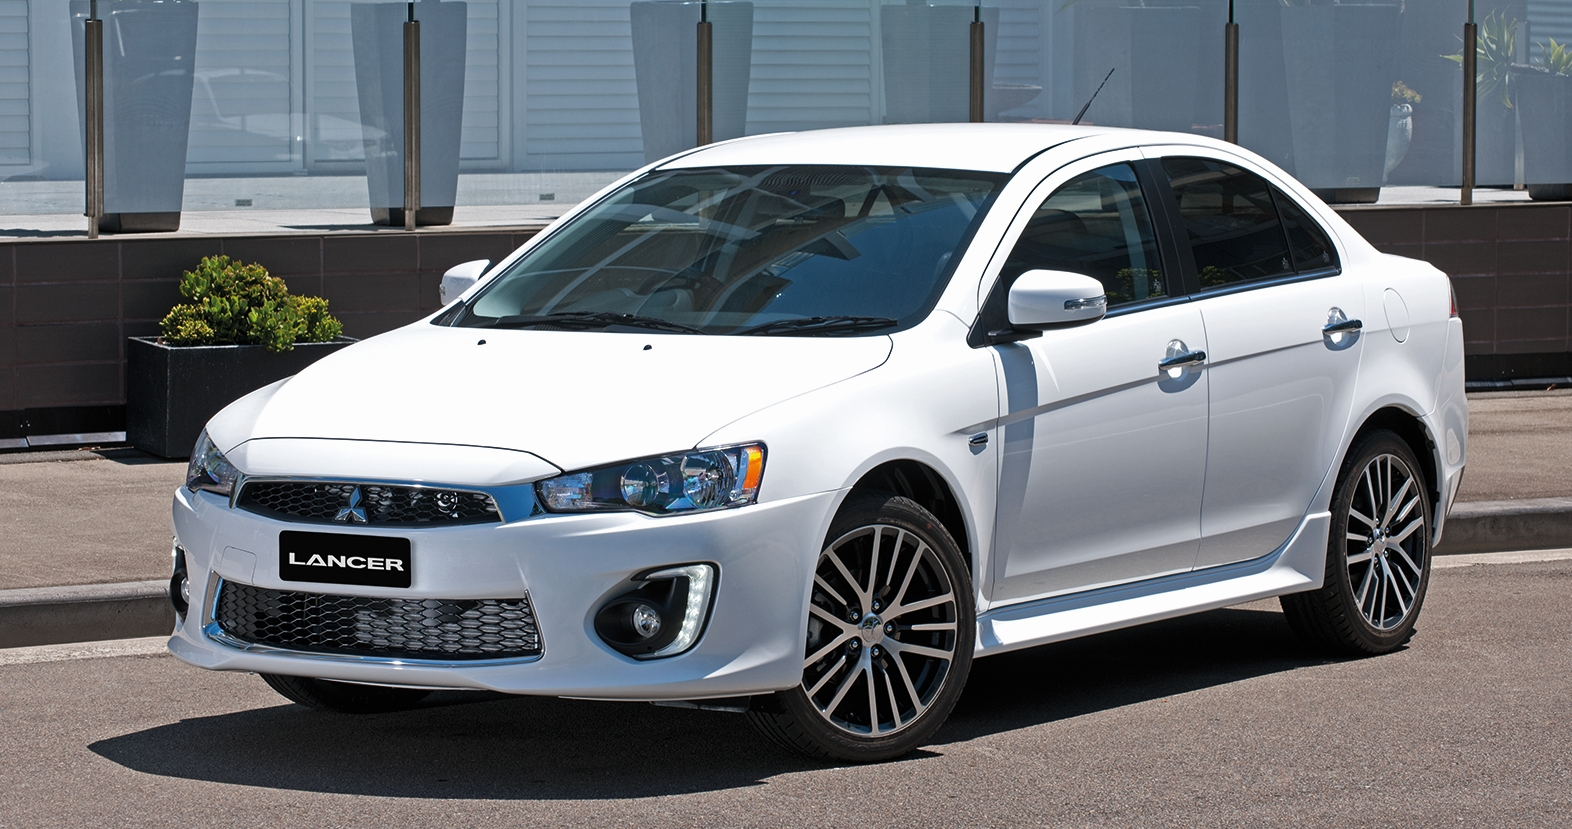 Back to Story: 2016 Mitsubishi Lancer facelift launched in Australia